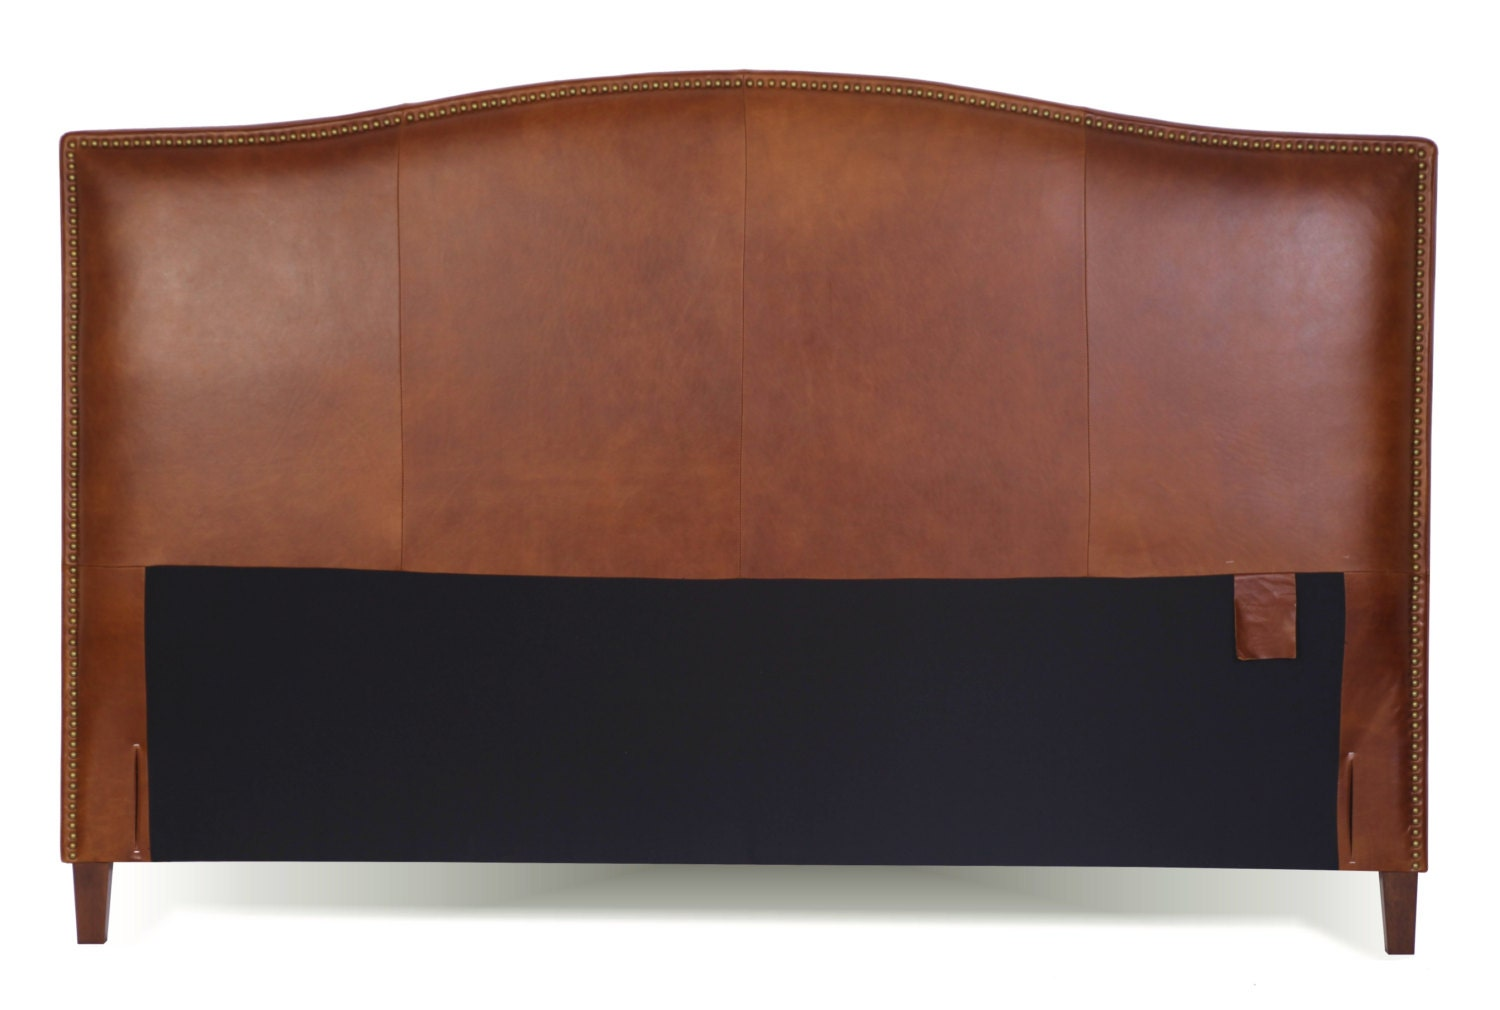 Queen Size Leather Headboard In Tobacco Brown Genuine Leather